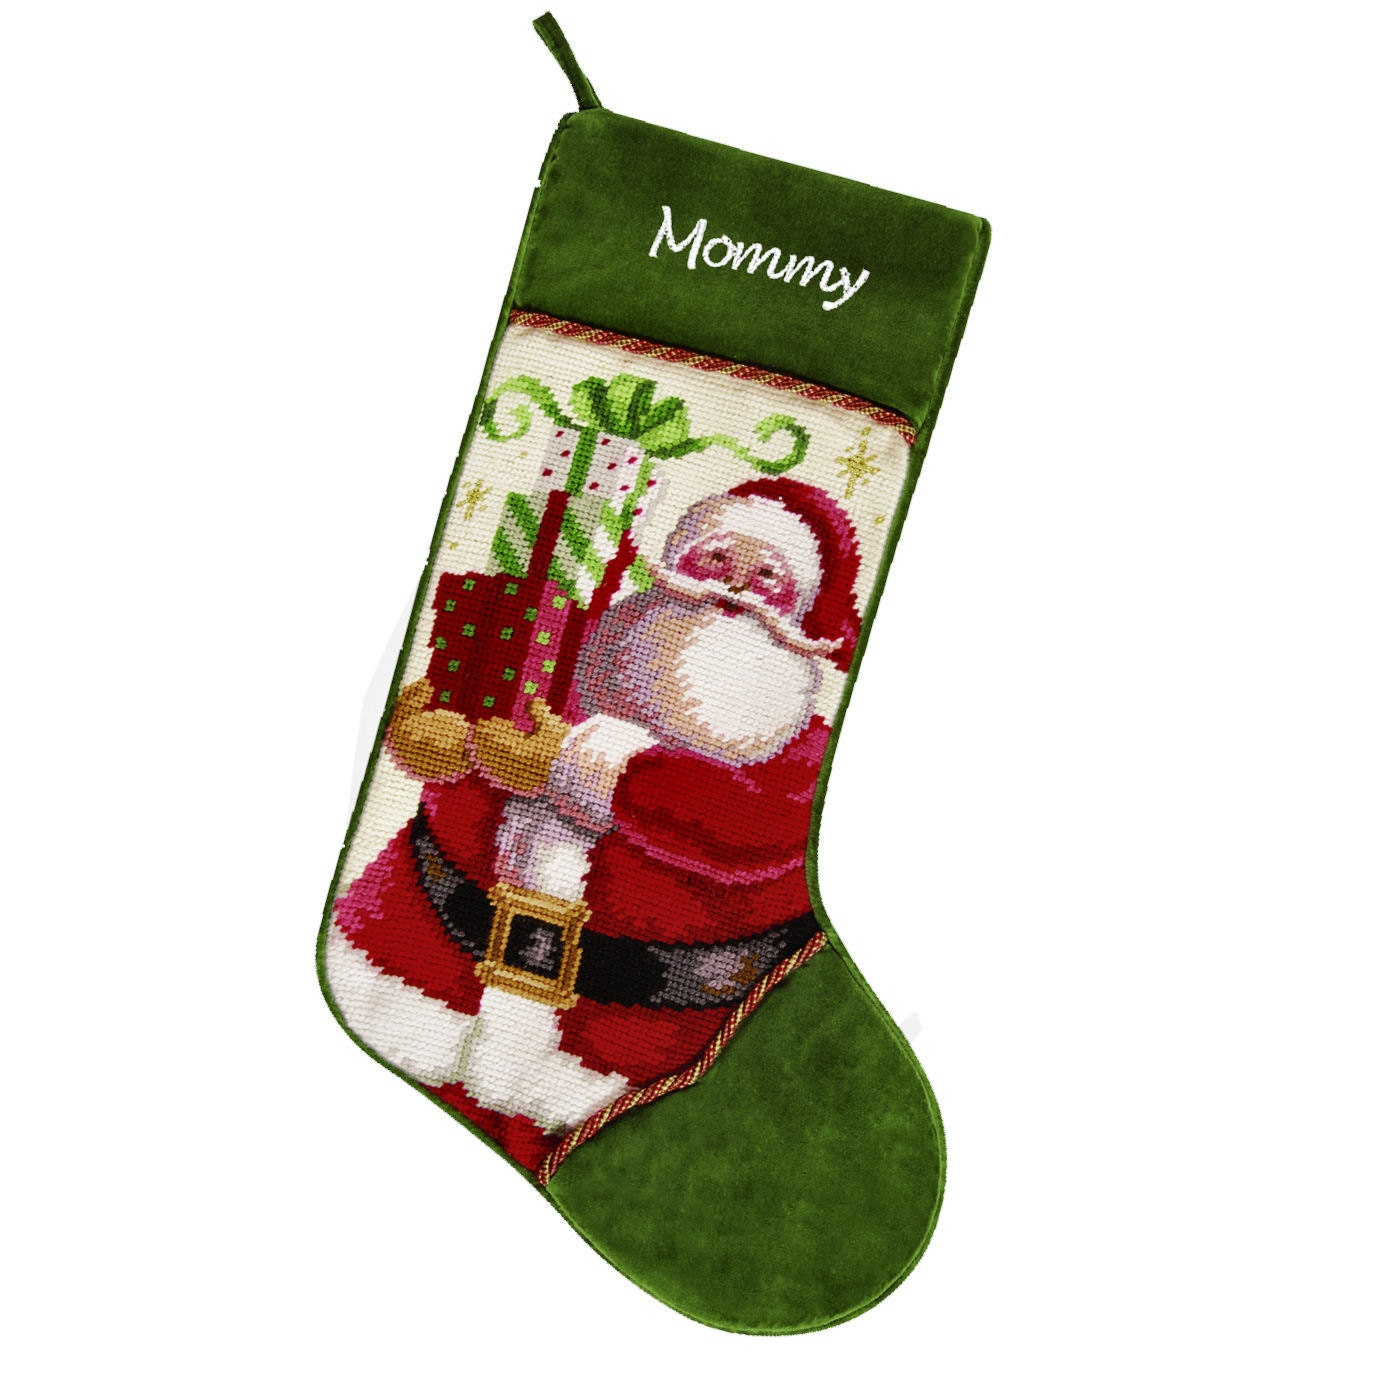 Needlepoint Christmas Stockings Santa With Presents By